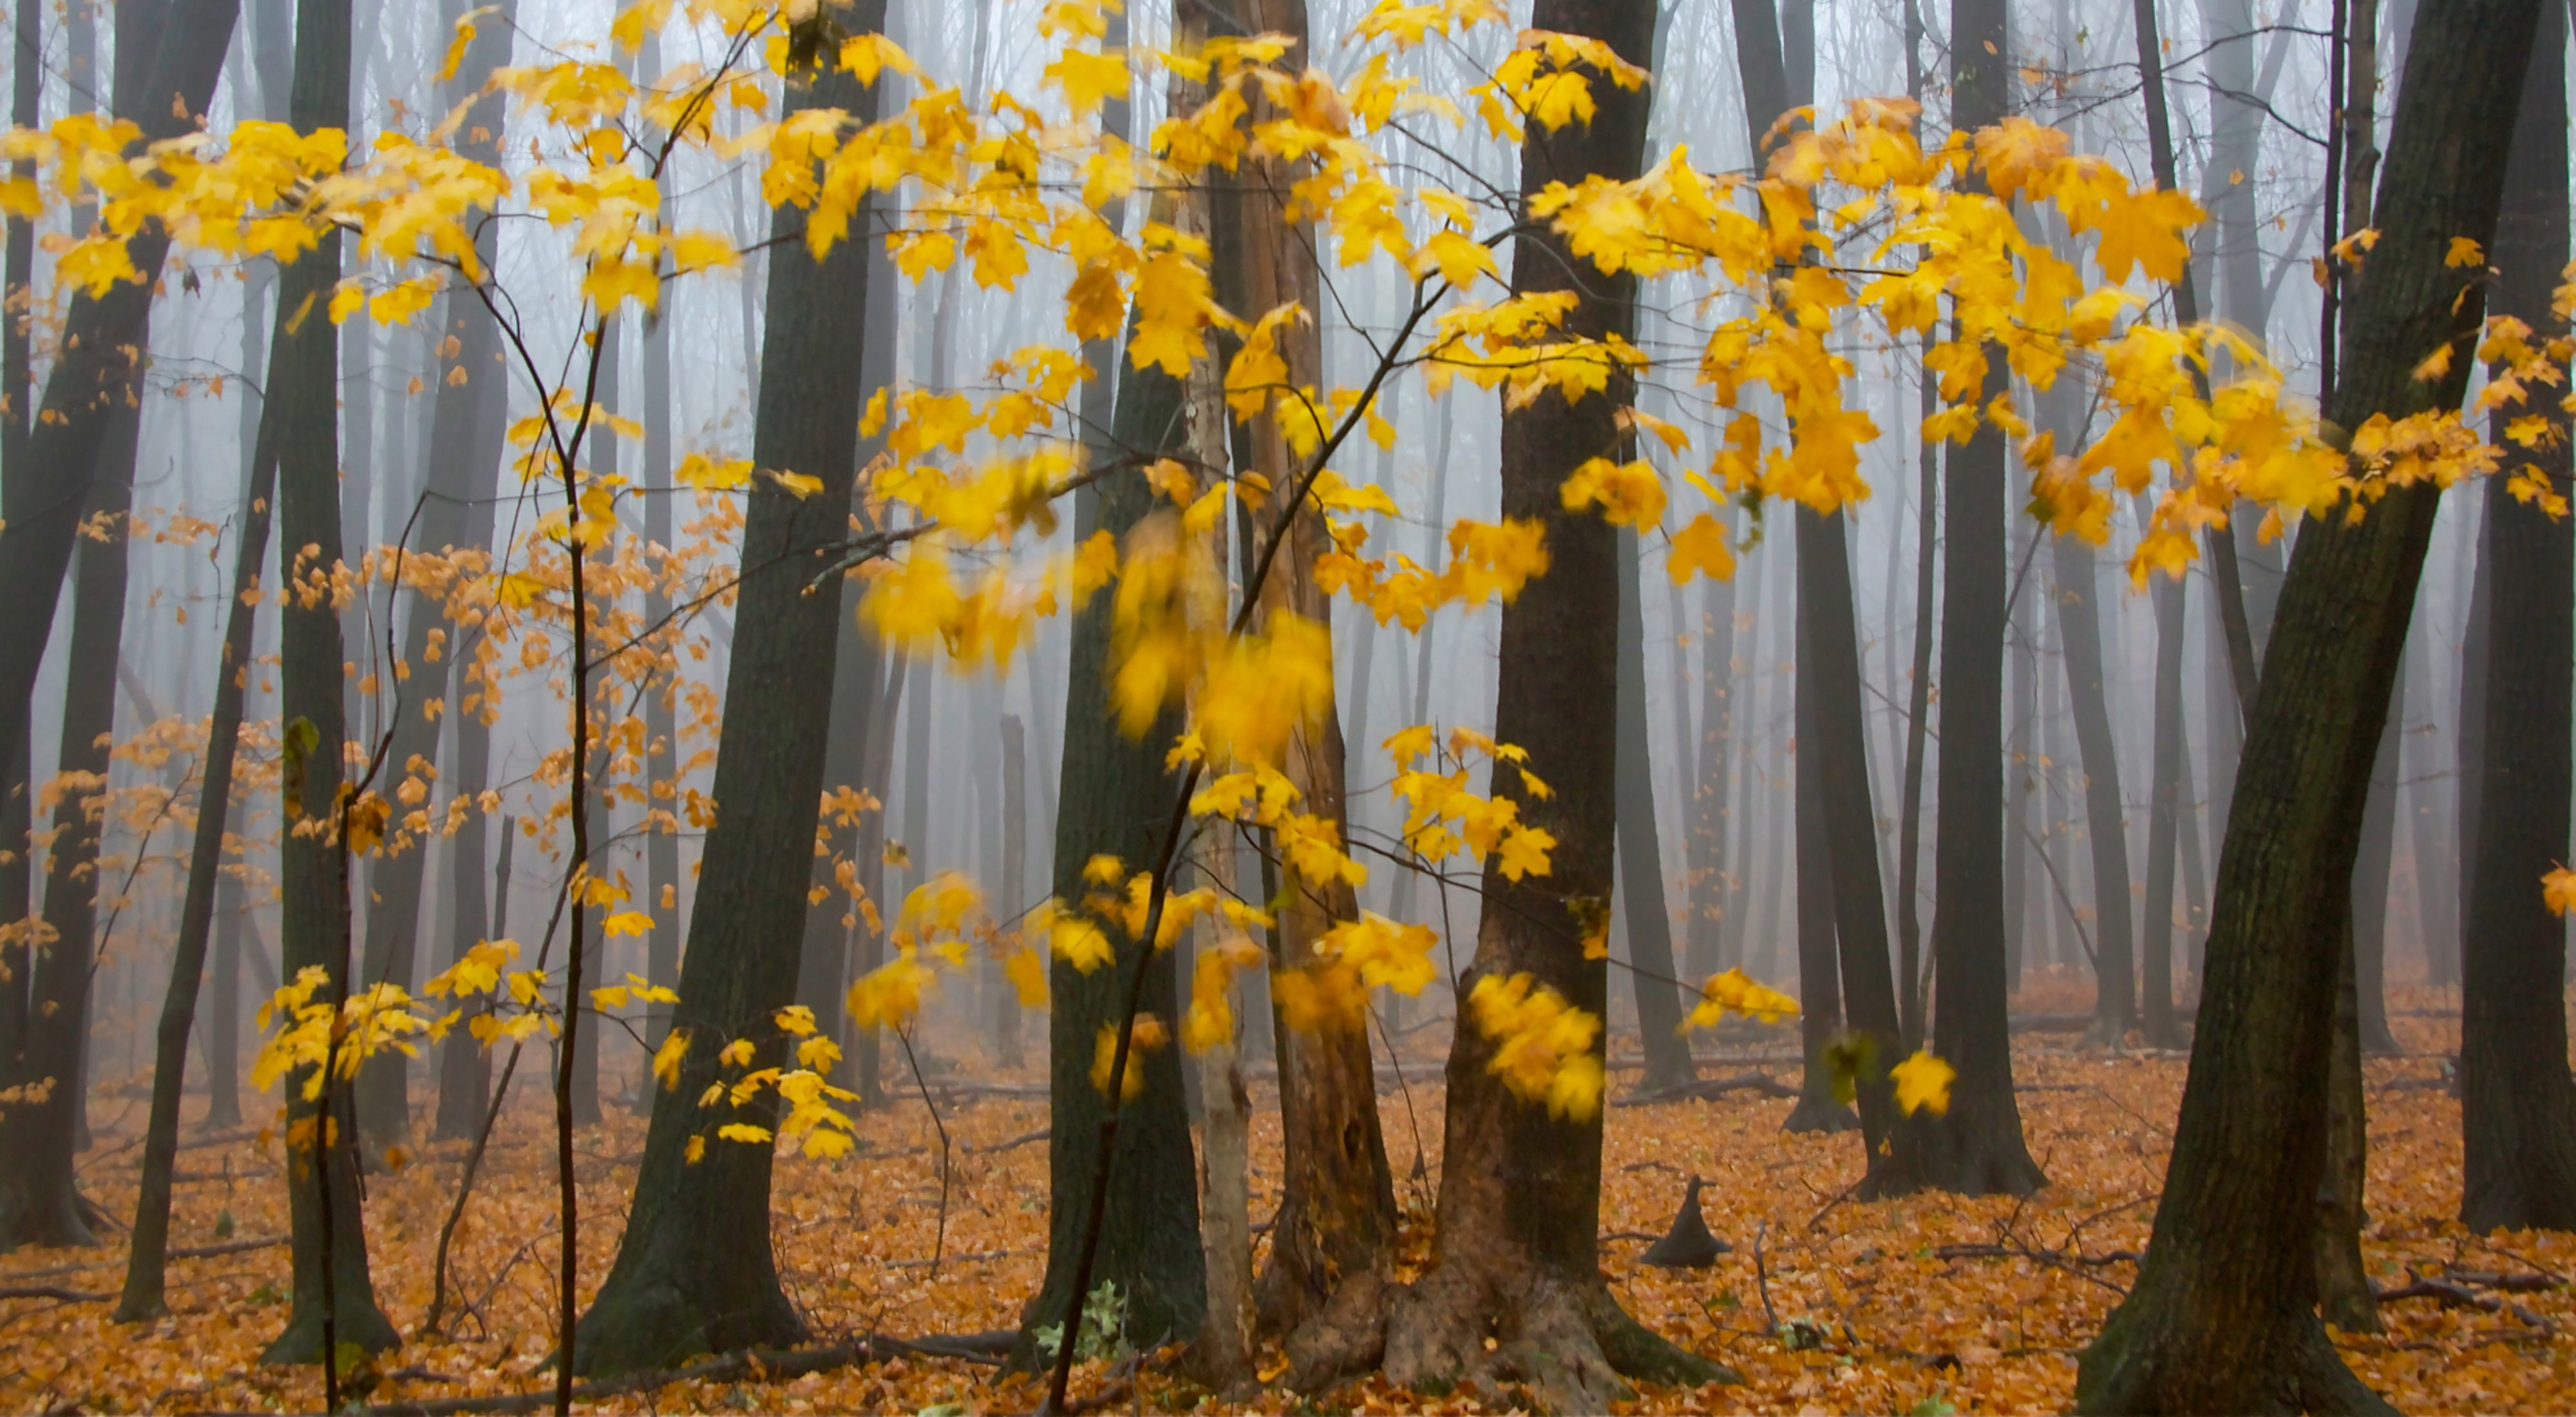 A Midwest favorite, maple trees are famous for their exceptional fall color and for making maple syrup.